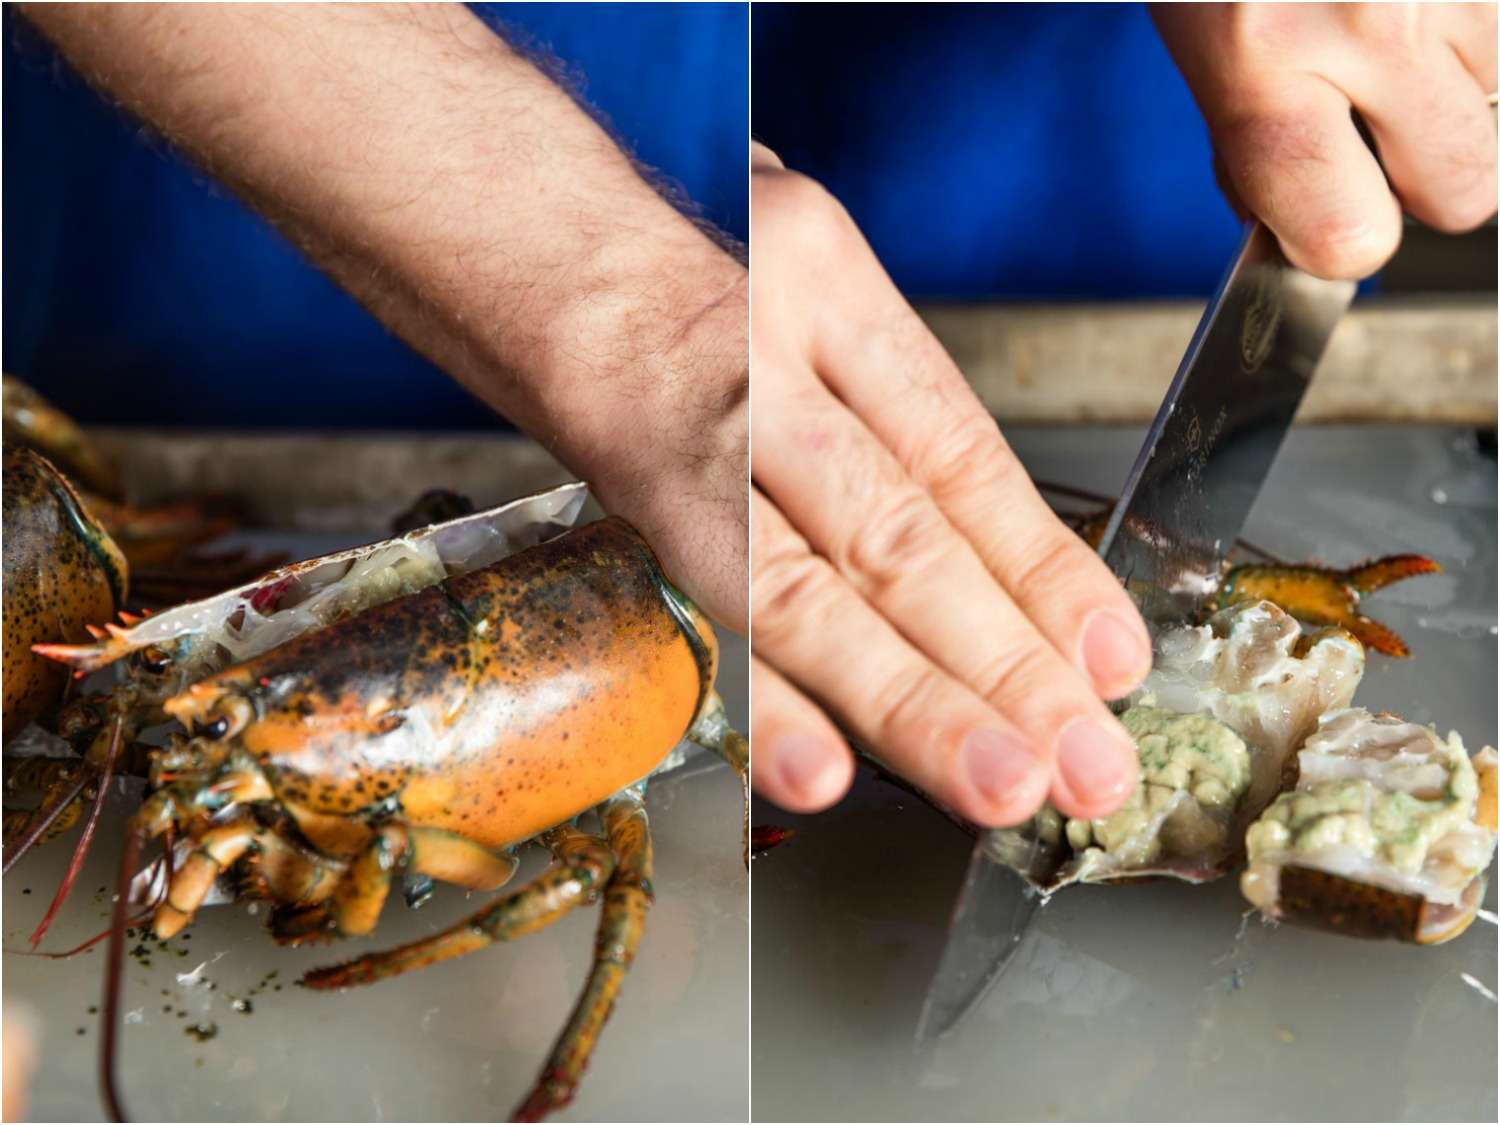 20170407-lobster-bisque-vicky-wasik-chopping-bodies.jpg